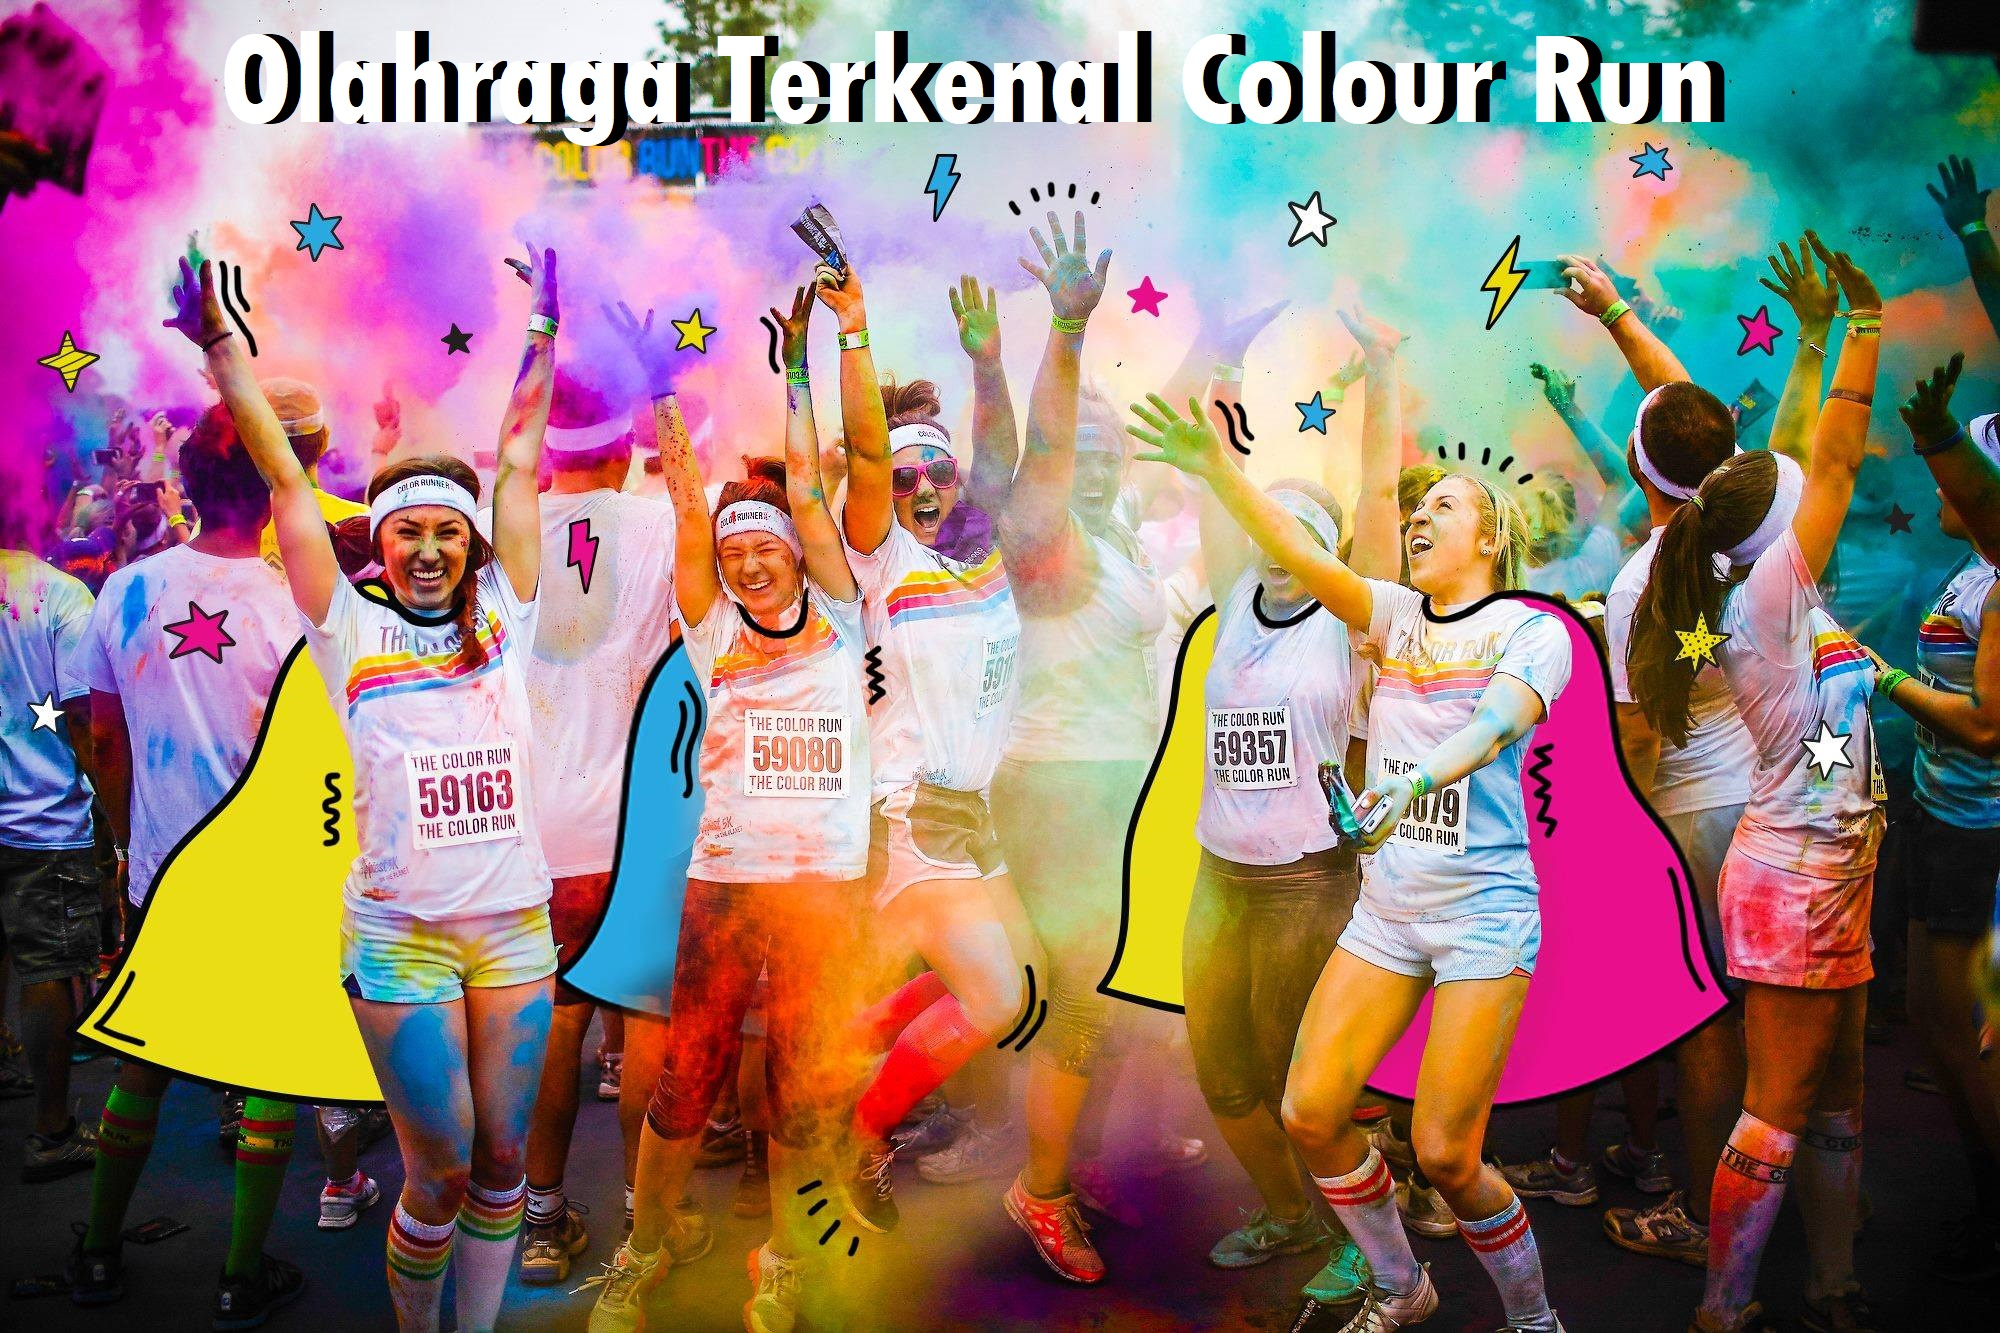 Olahraga Terkenal Colour Run